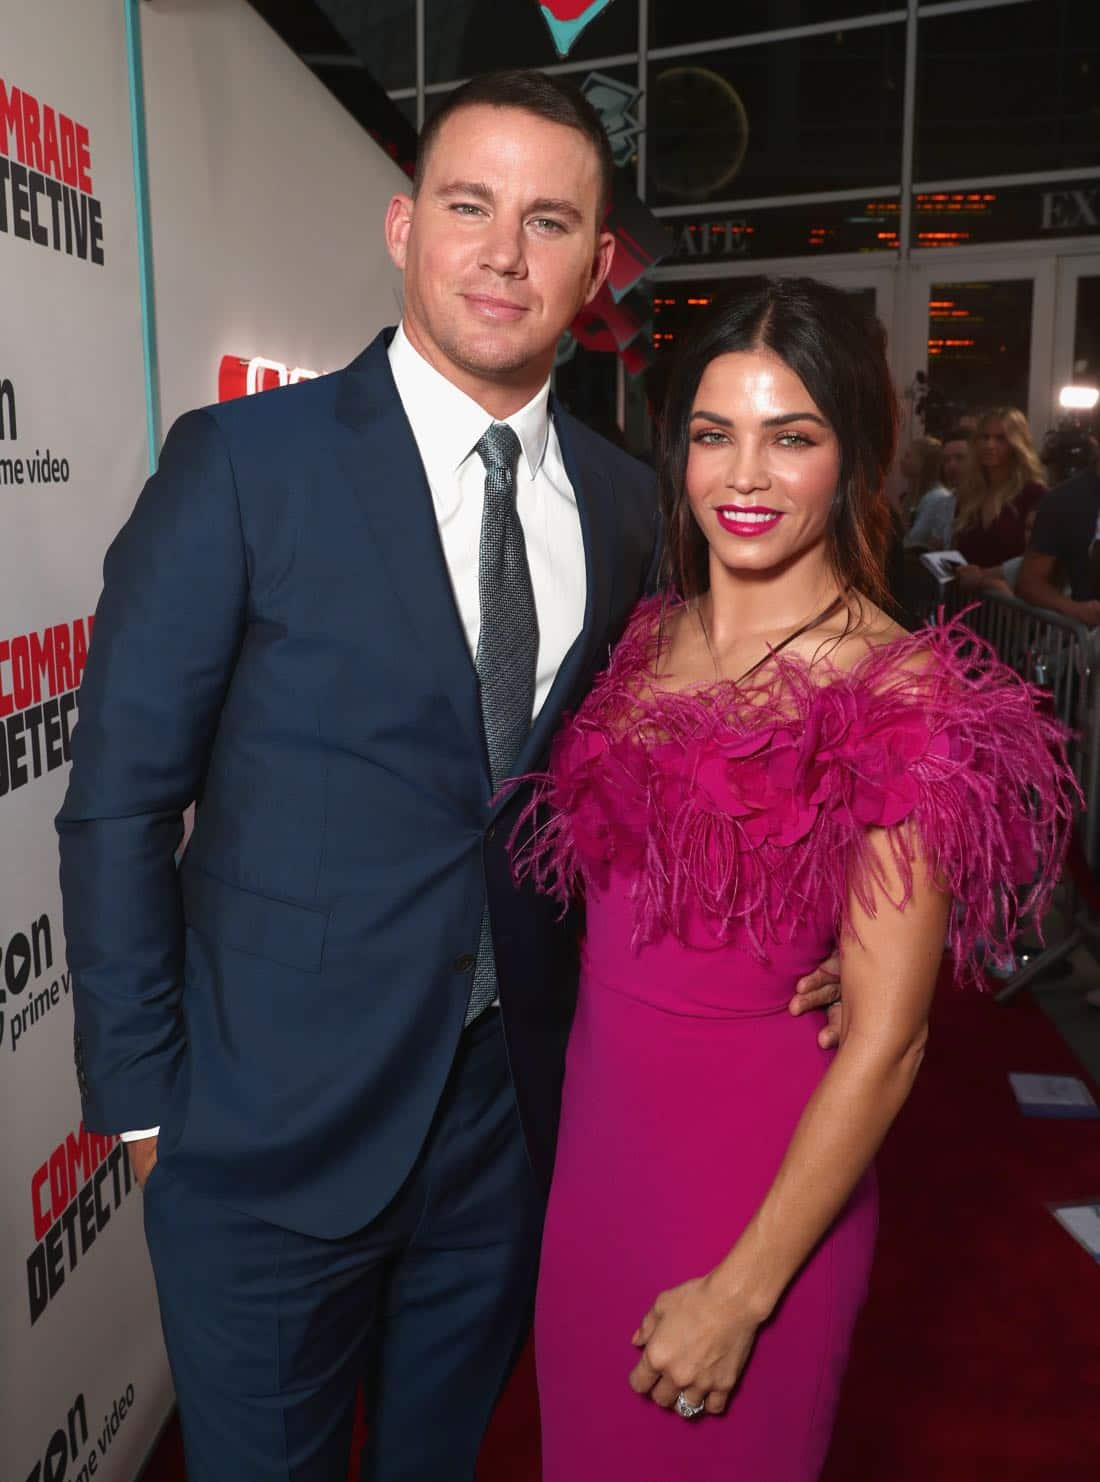 "LOS ANGELES, CA - AUGUST 03: Actors Channing Tatum (L) and Jenna Dewan Tatum attend Amazon Prime Video Premiere Of Original Comedy Series ""Comrade Detective"" In Los Angeles on August 3, 2017 in Los Angeles, California. (Photo by Todd Williamson/Getty Images for Amazon Studios)"